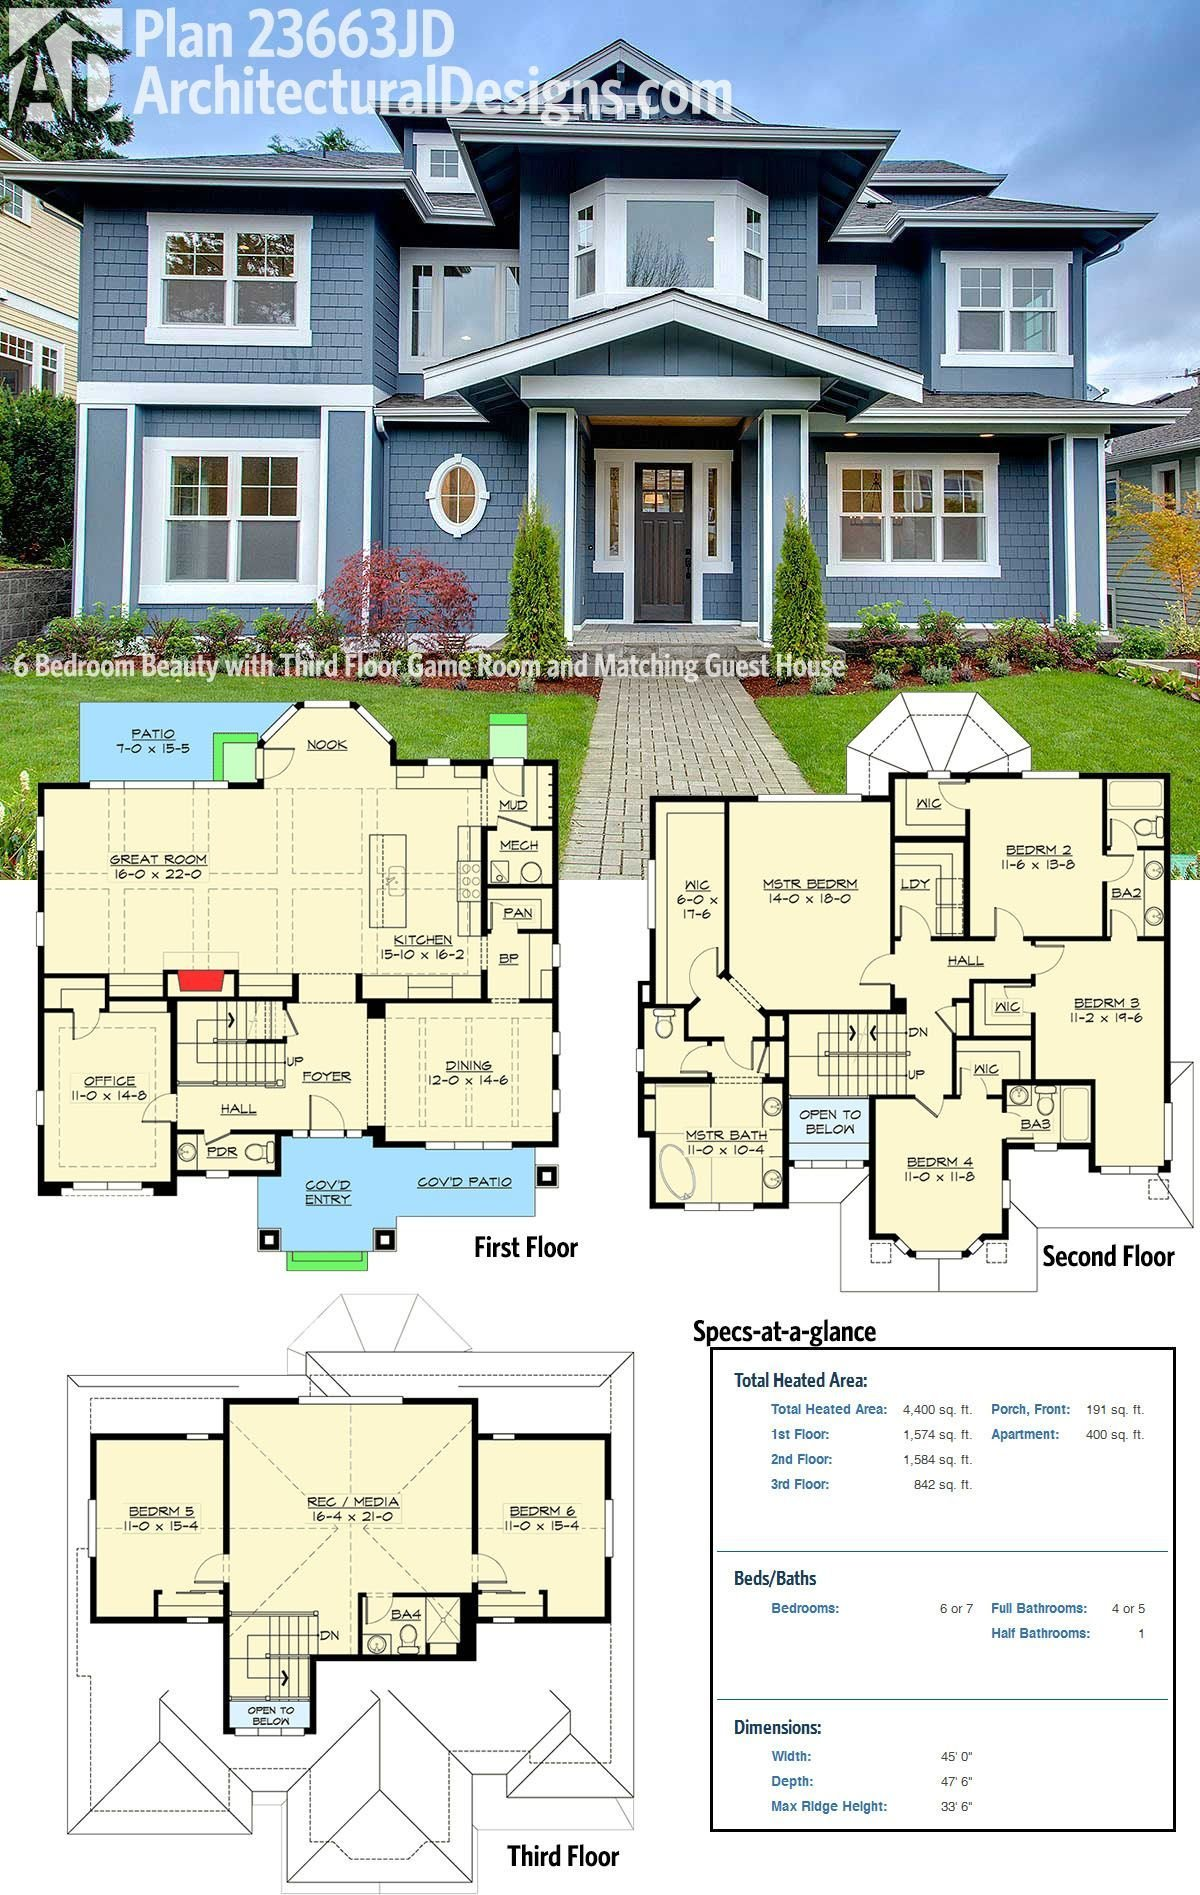 Best Plan 23663Jd 6 Bedroom Beauty With Third Floor Game Room With Pictures